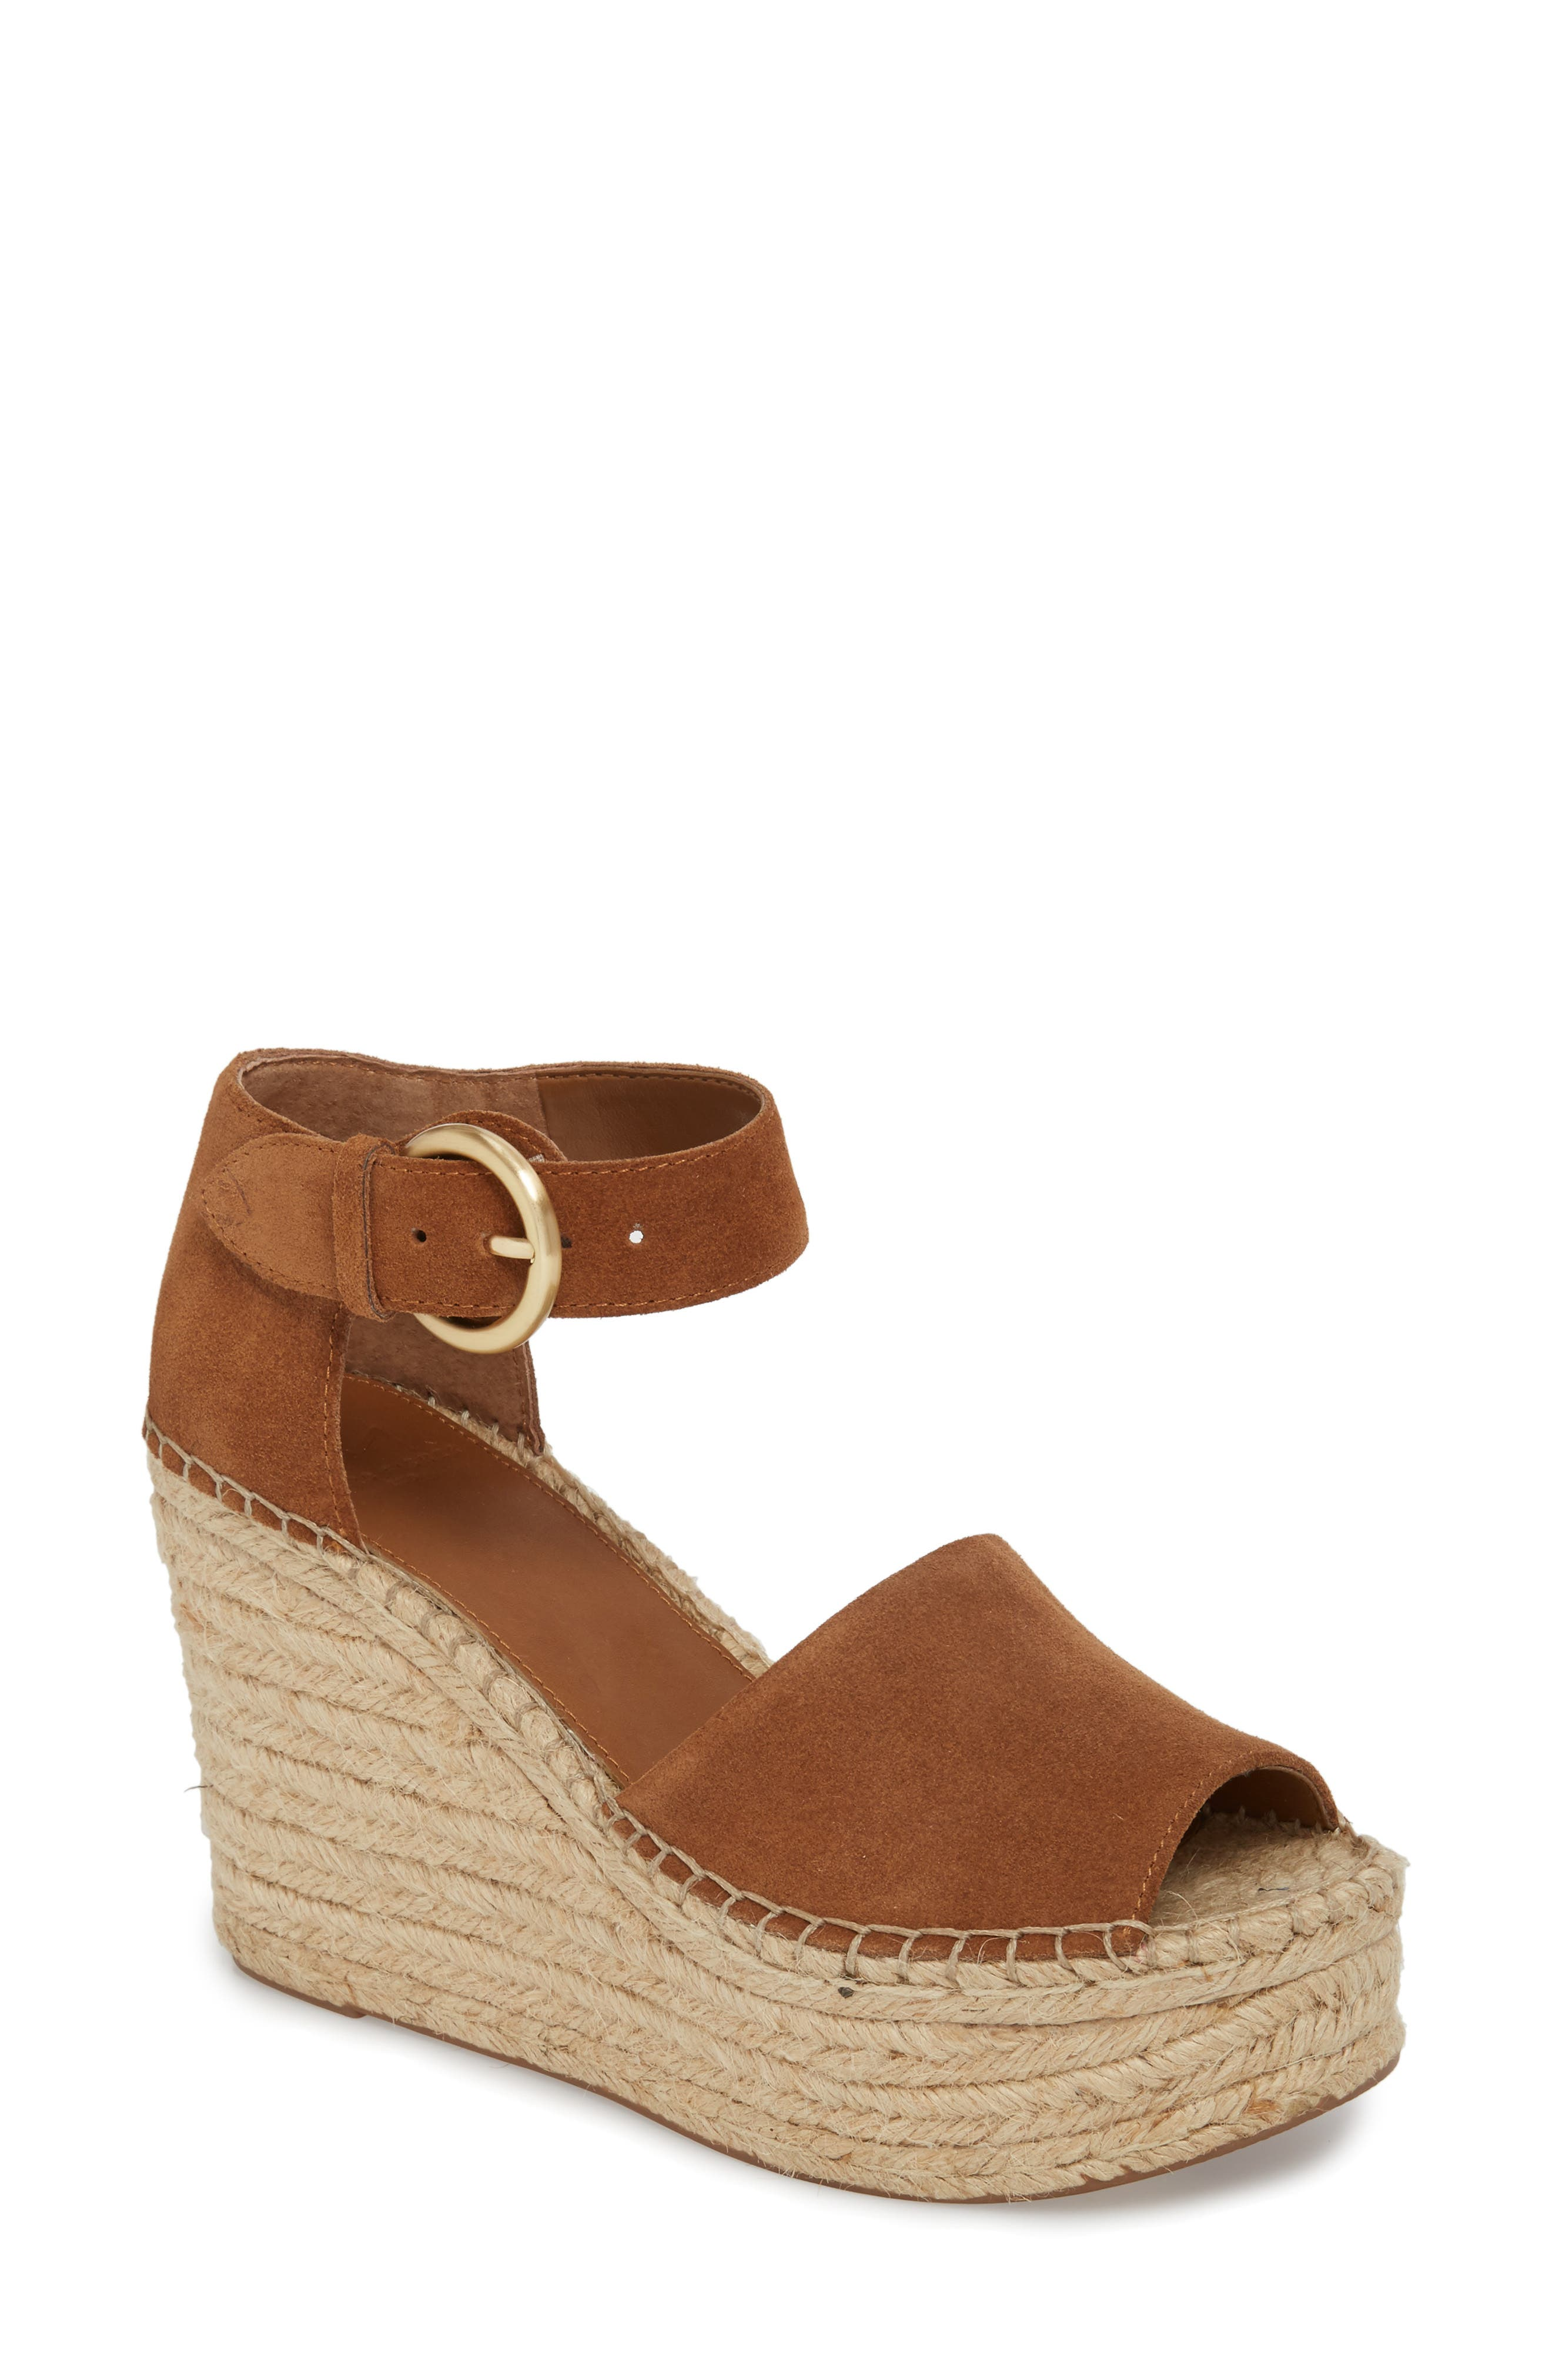 dbf853a857d Target Look-A-Likes: Favorite Sandals